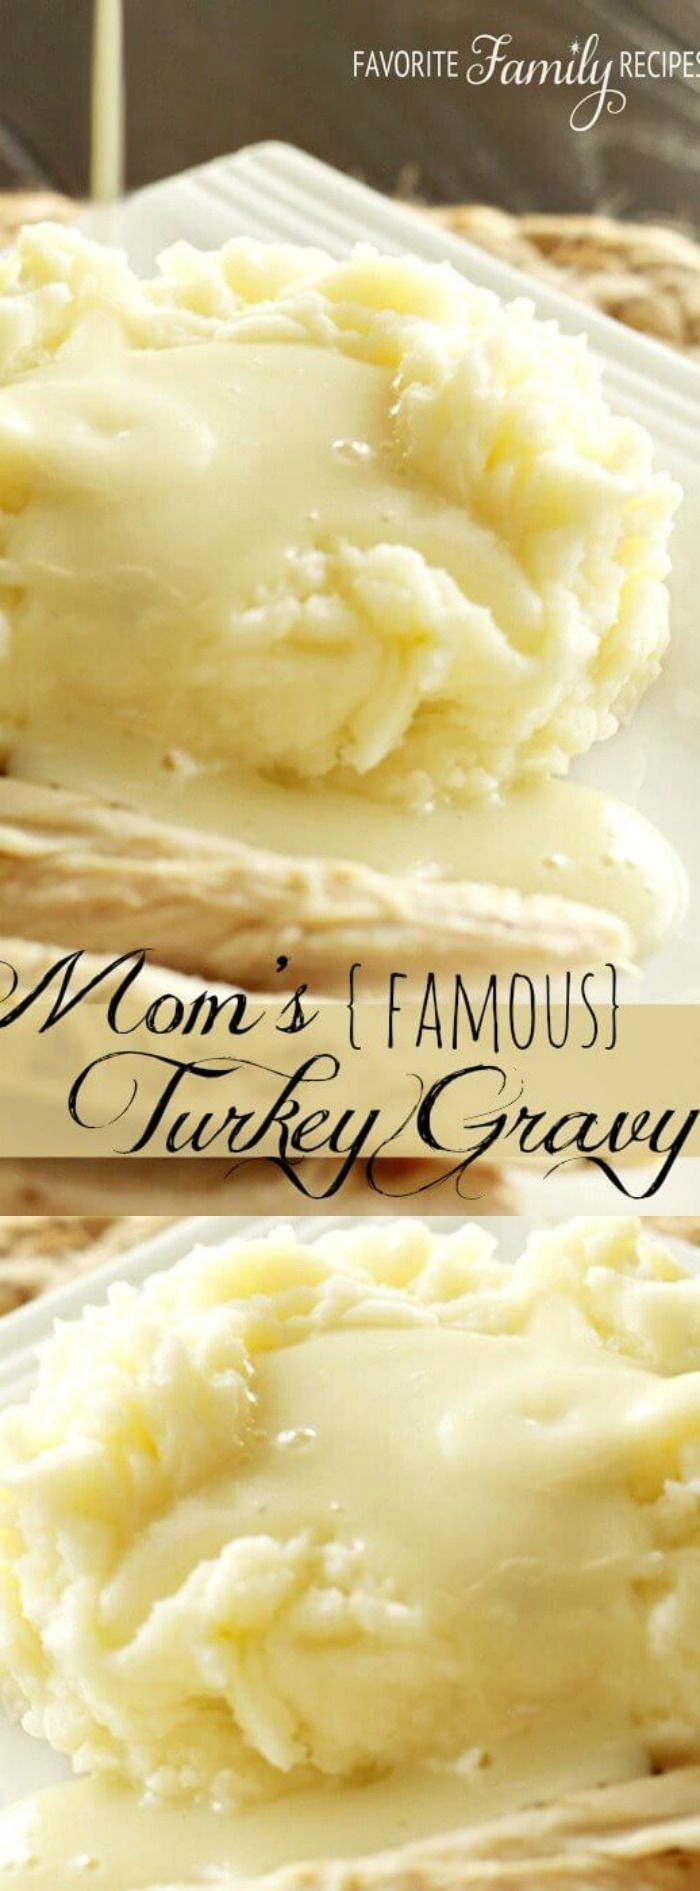 """This Mom's Famous Turkey Gravy from Favorite Family Recipes is the perfect recipe to have on hand for the holidays! It has been passed down from """"Mom"""" and is always a HUGE hit when it's made."""